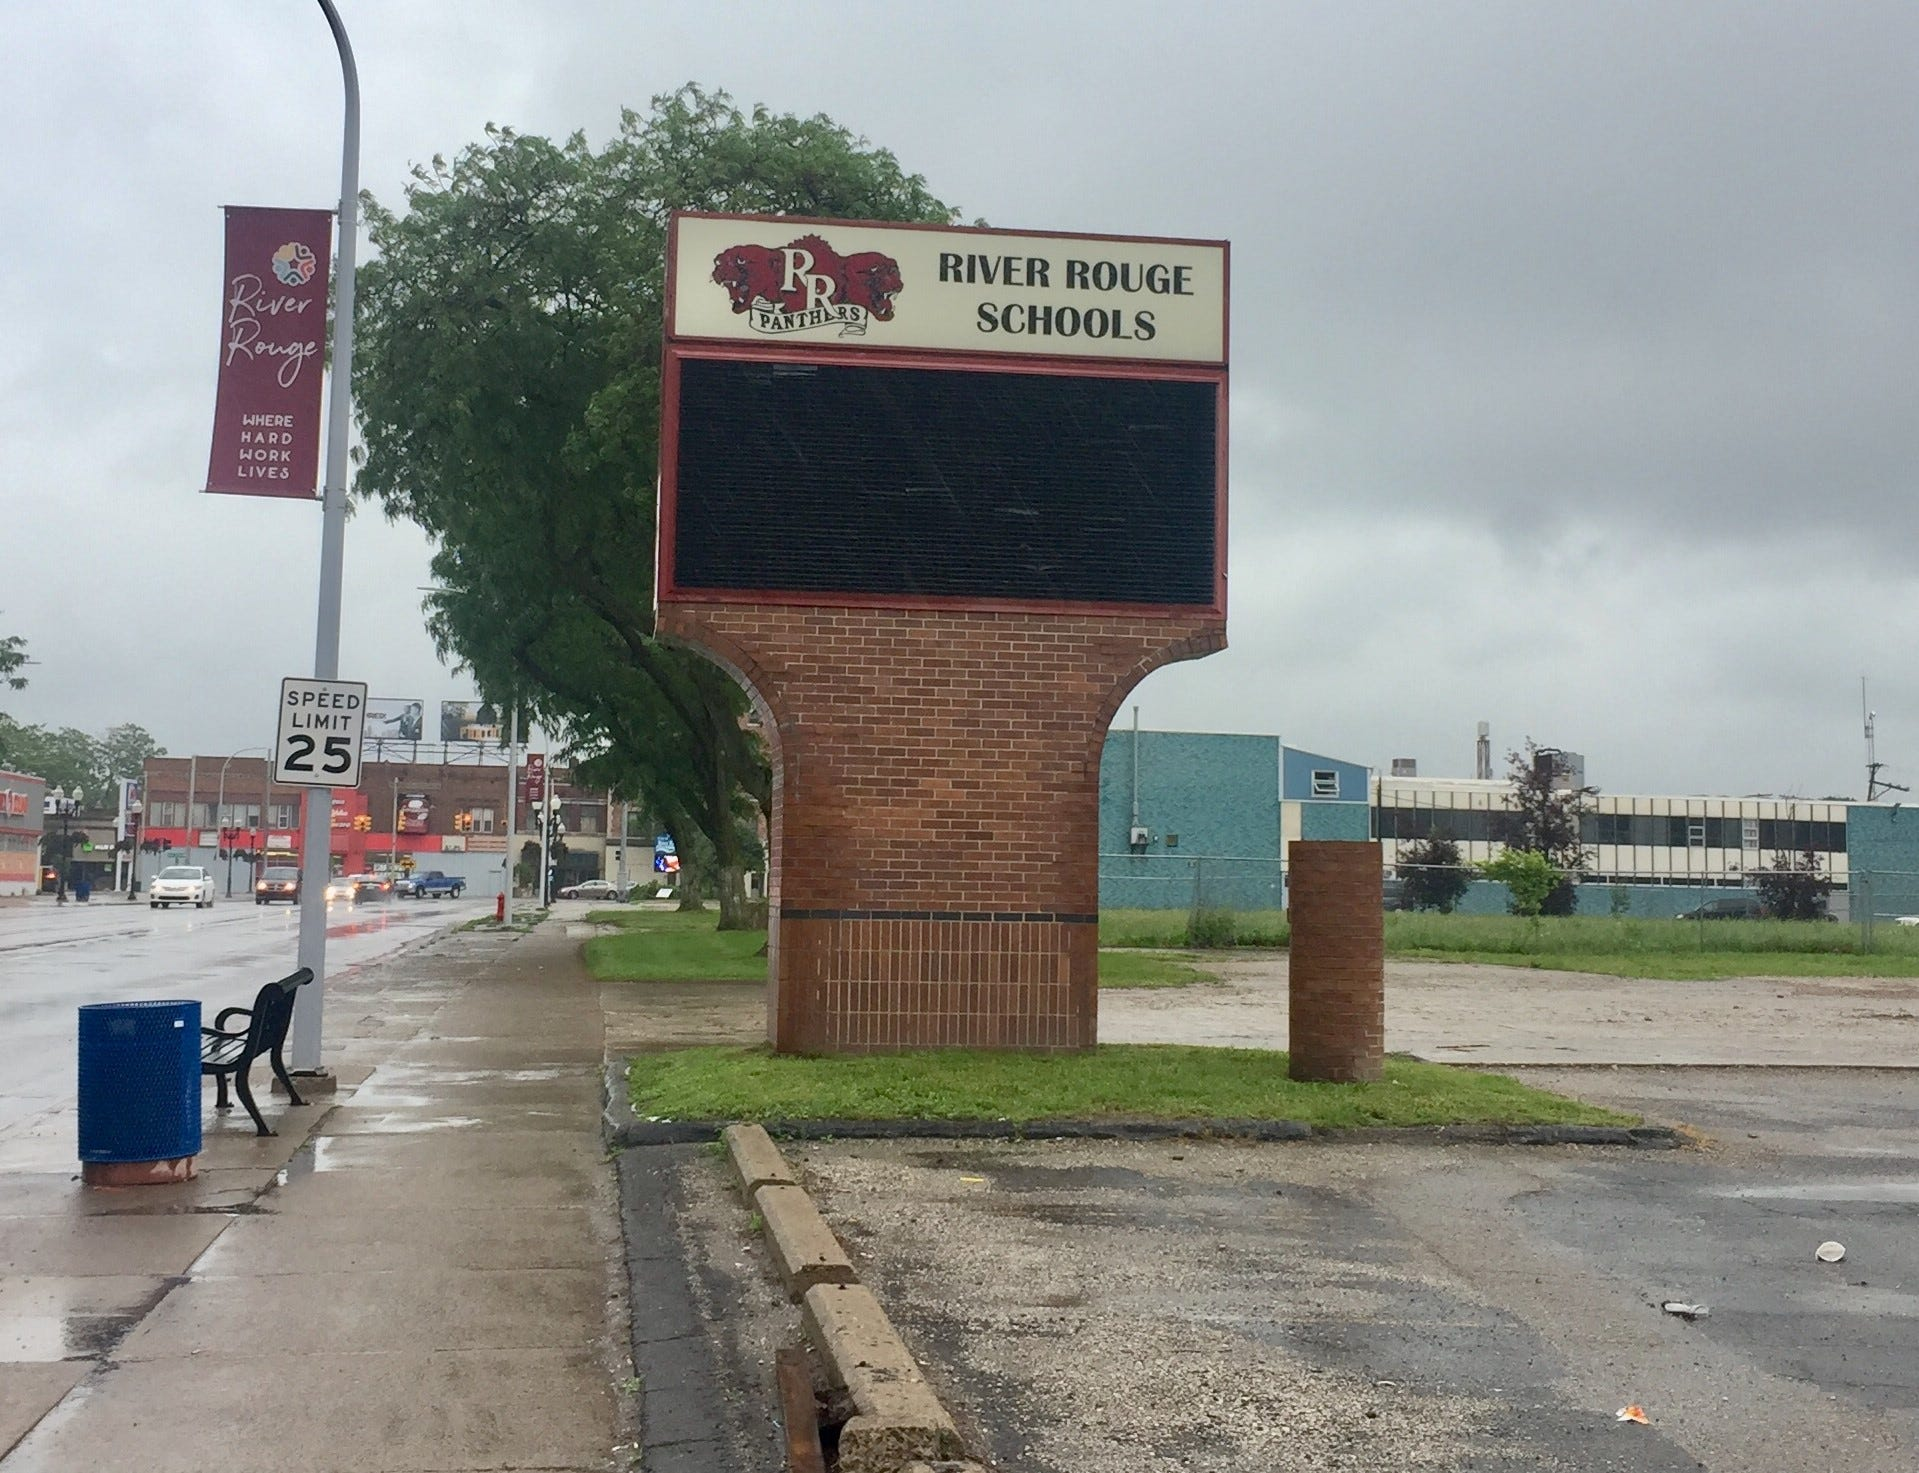 River Rouge schools spend big on travel expenses